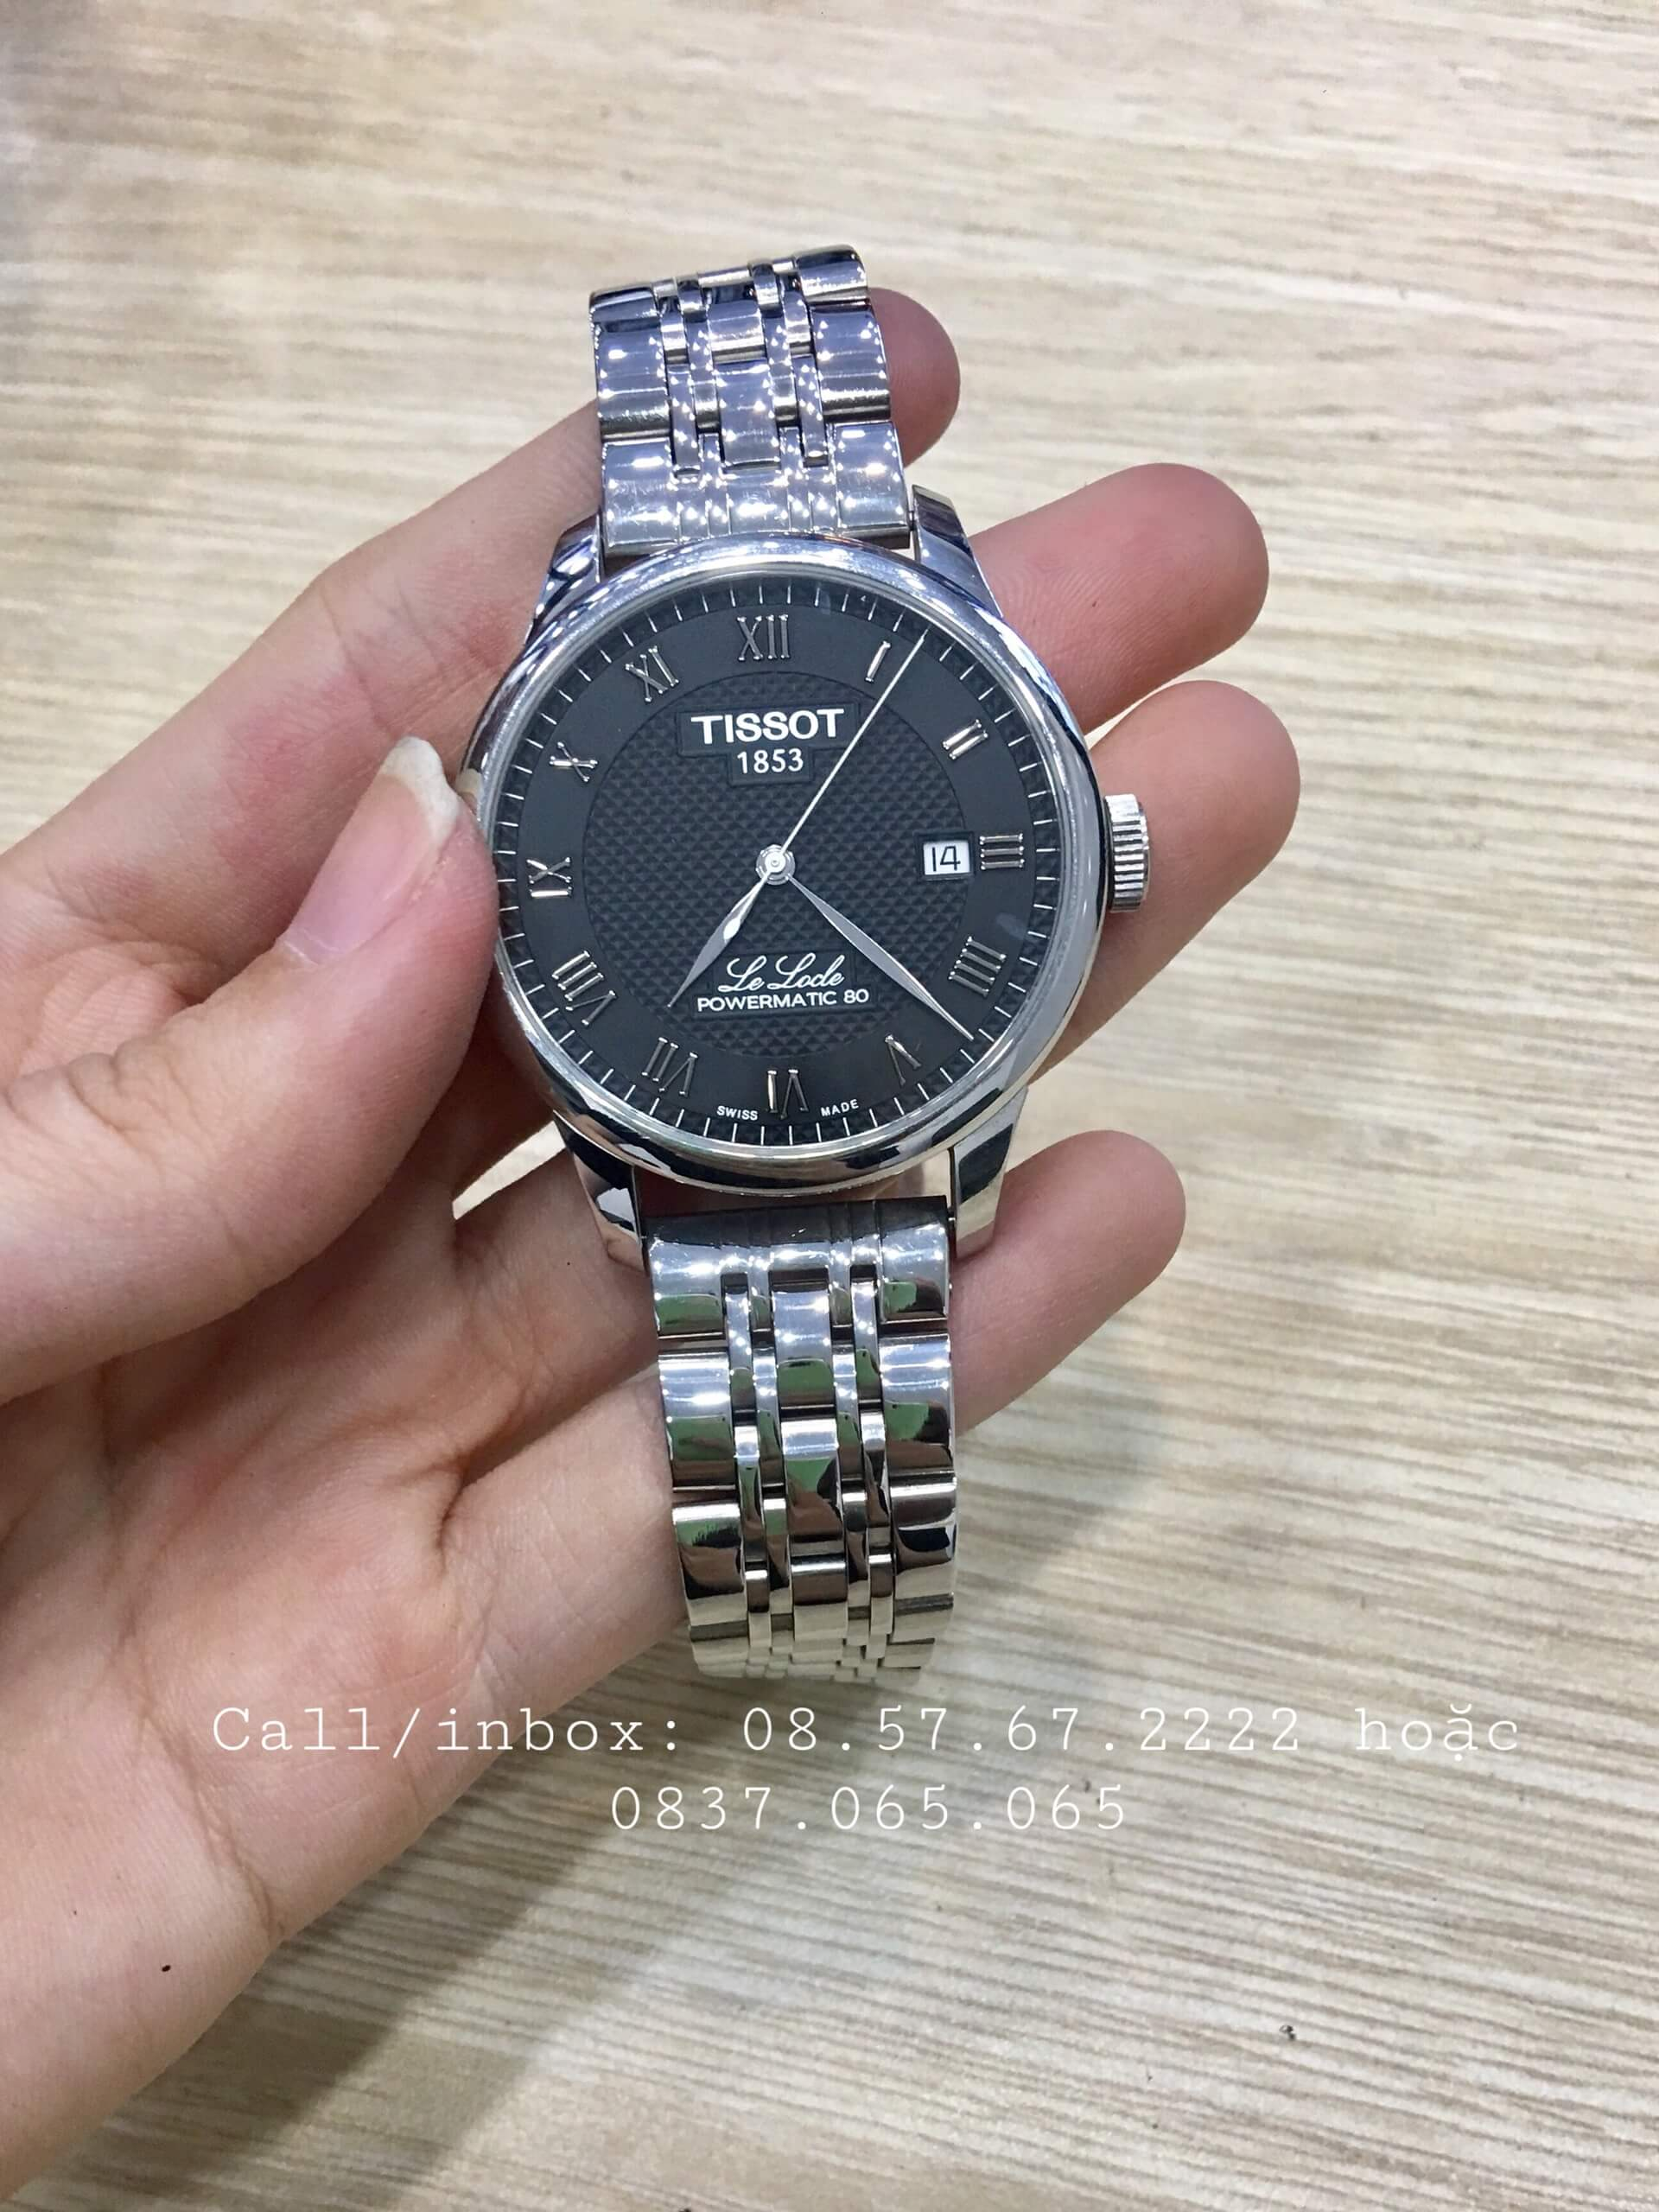 cach phoi day deo dong ho tissot 1989W6